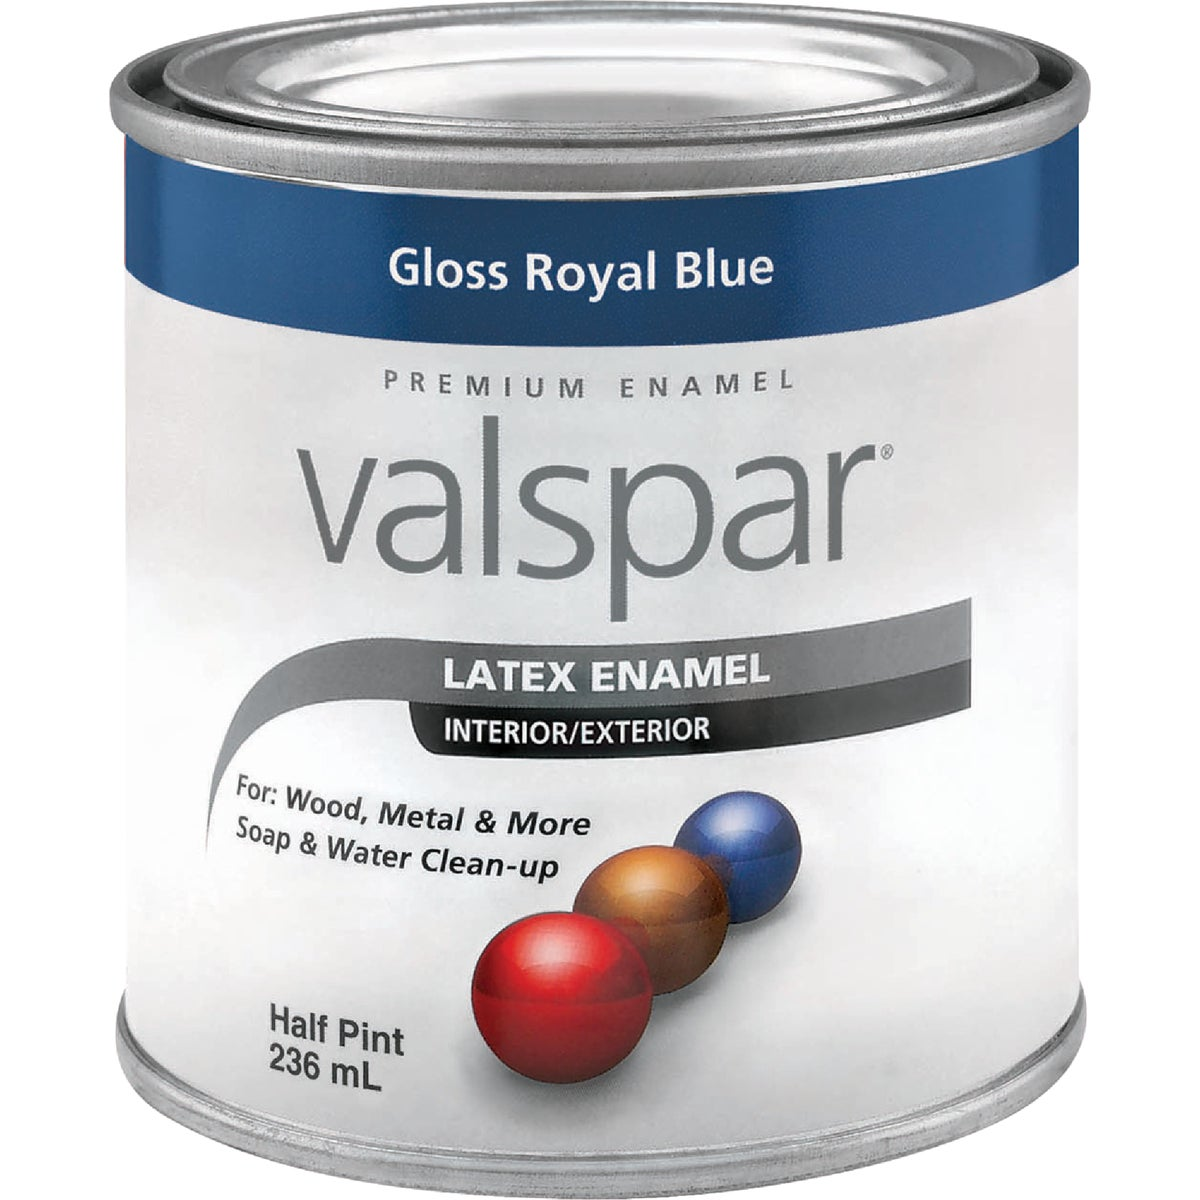 LTX DARK BLUE ENAMEL - 410.0065031.003 by Valspar Corp